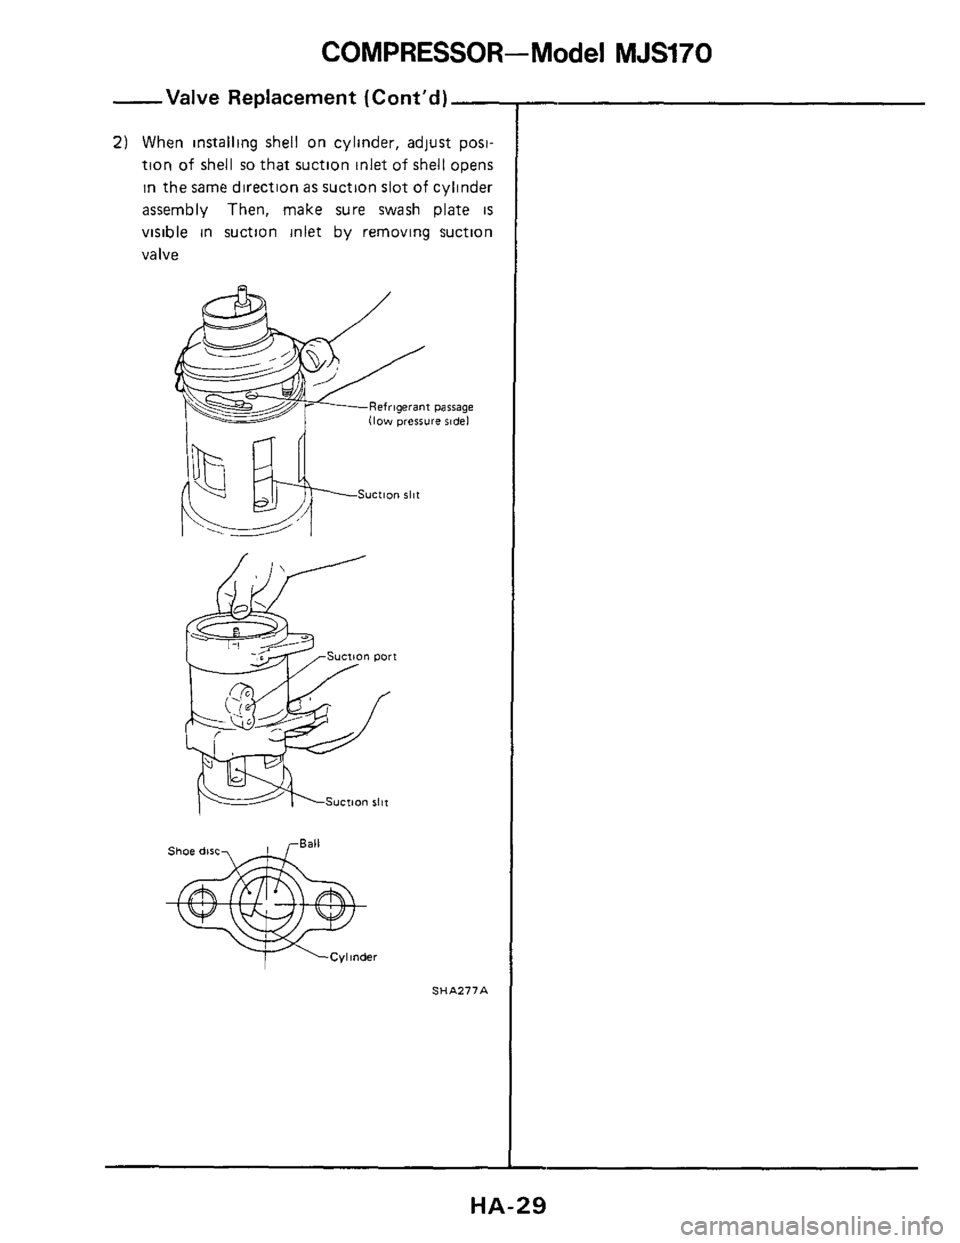 NISSAN 300ZX 1984 Z31 Heather And Air Conditioner Owners Manual COMPRESSOR-Model MJS170  -Valve Replacement (Cont'd)-  2) When installing shell on cylinder,  adjust post-  tion  of shell so that  suction  inlet of shell opens  in the  same direction  as suction